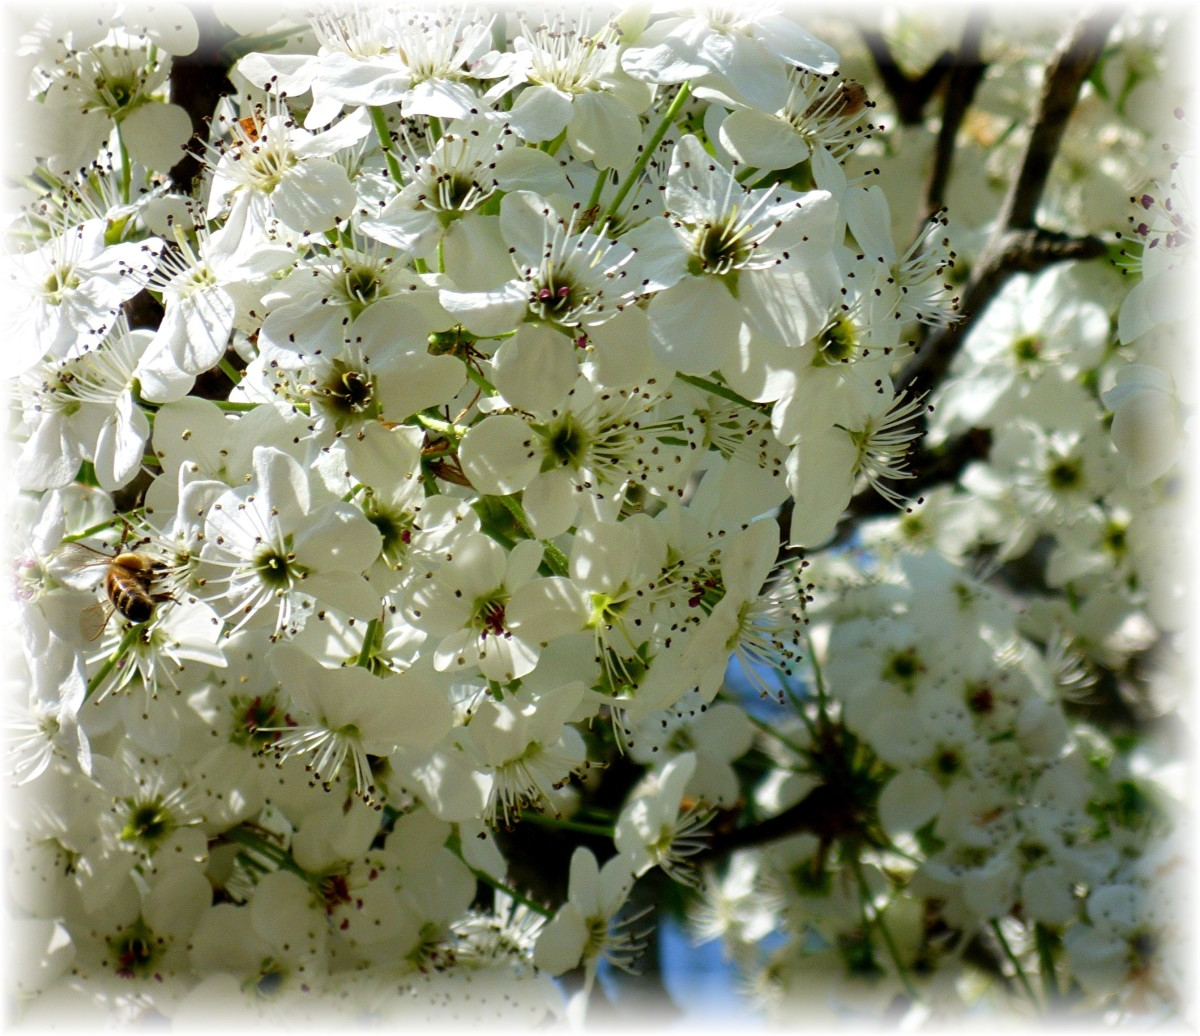 Notice the bee amidst the blossoms?